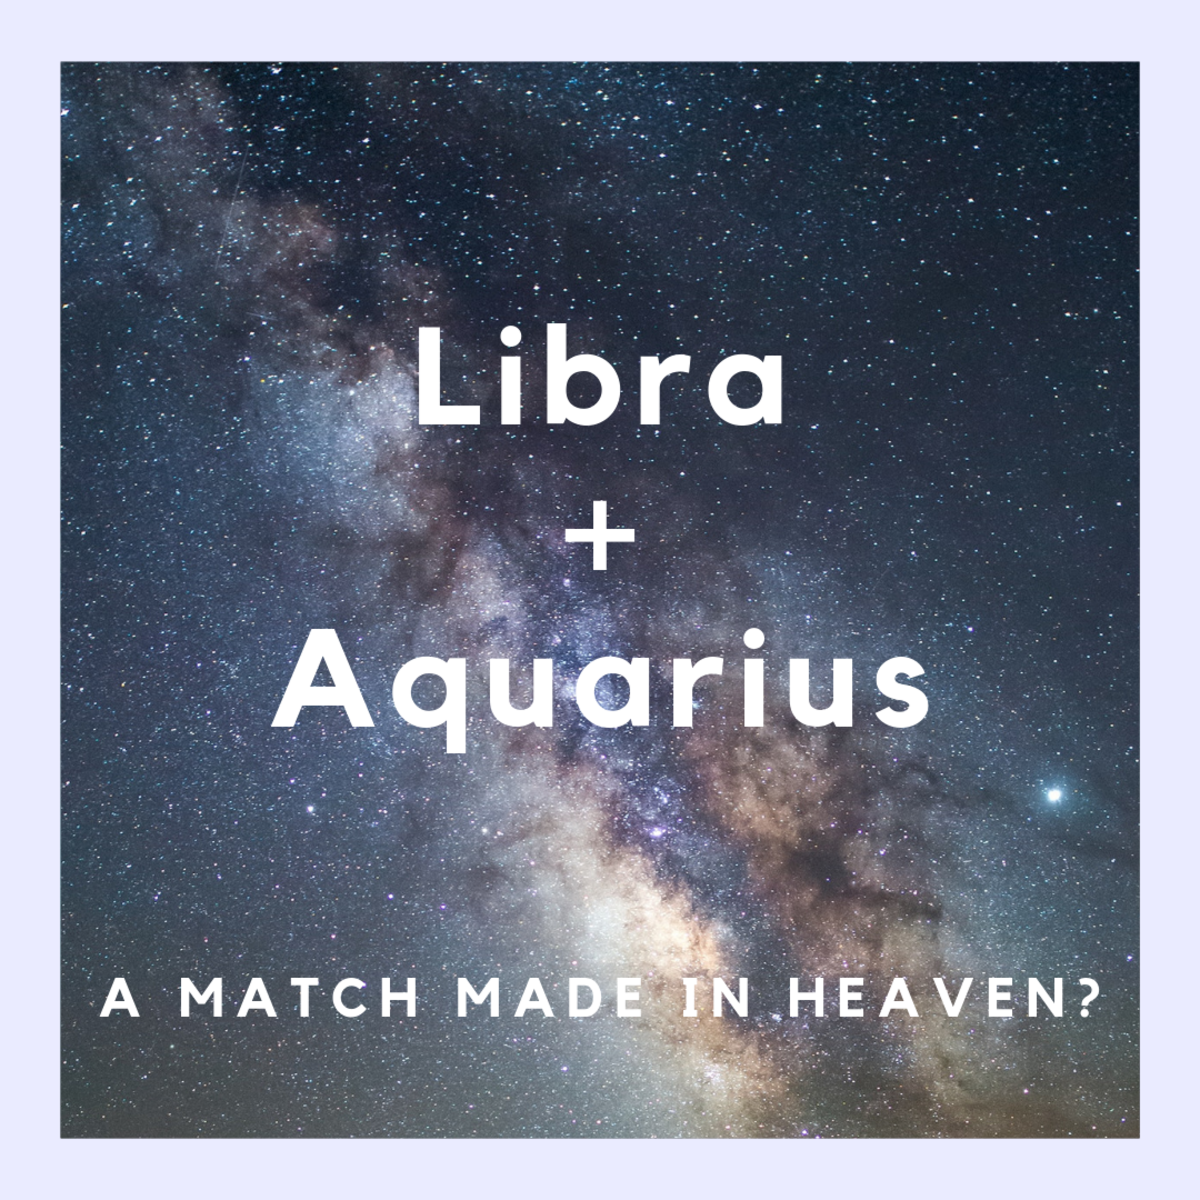 Aquarius and Libra are intrinsically attracted to each other. But why? Read on to find out.